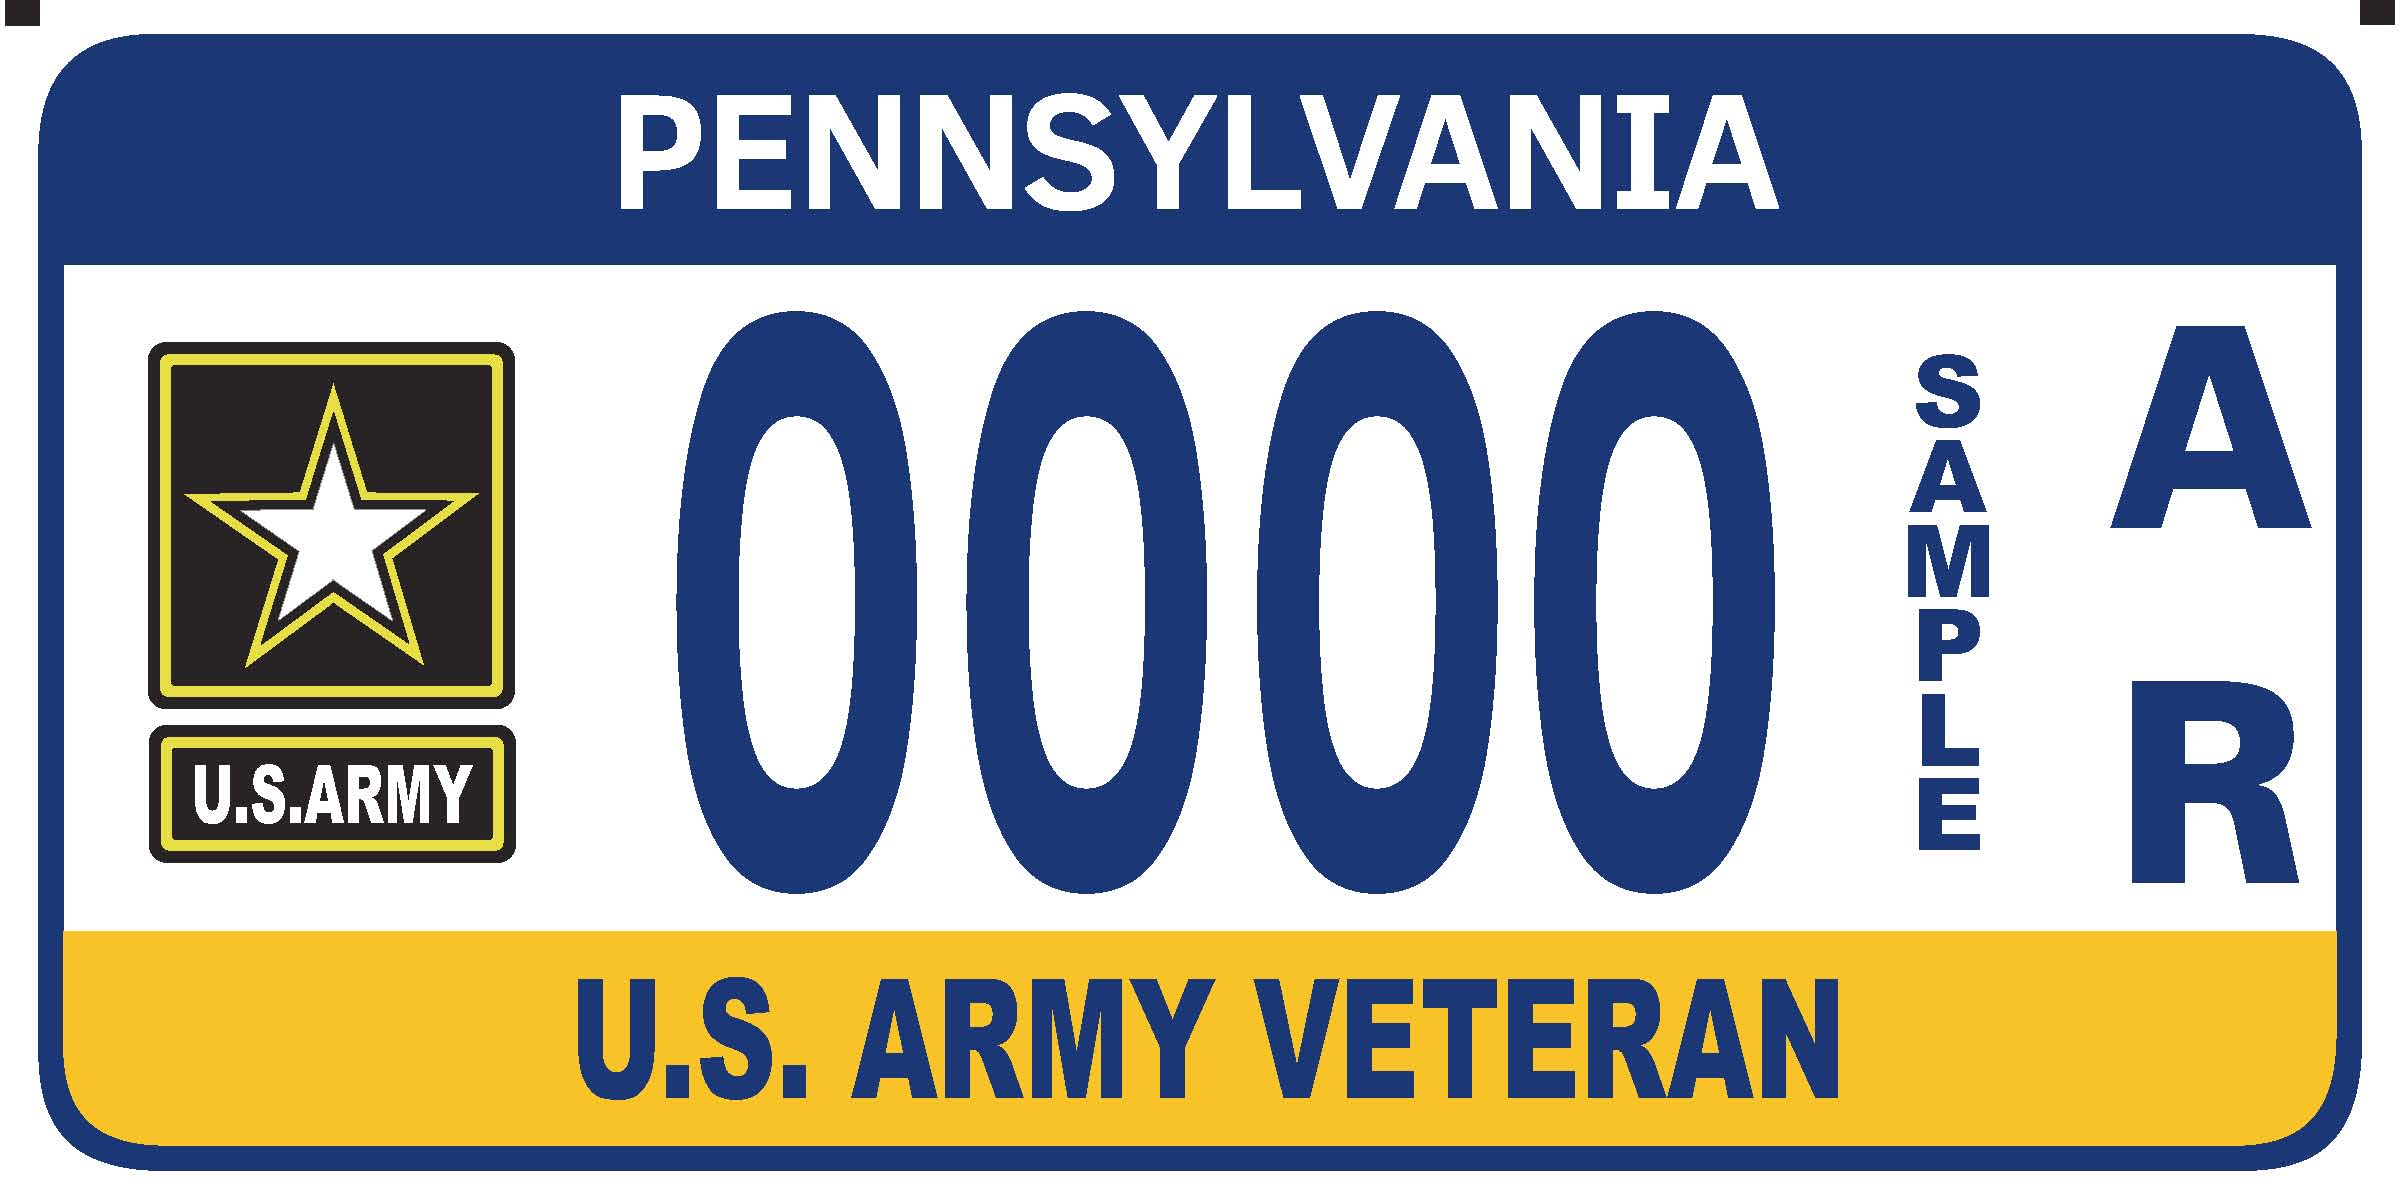 Military Registration Plates